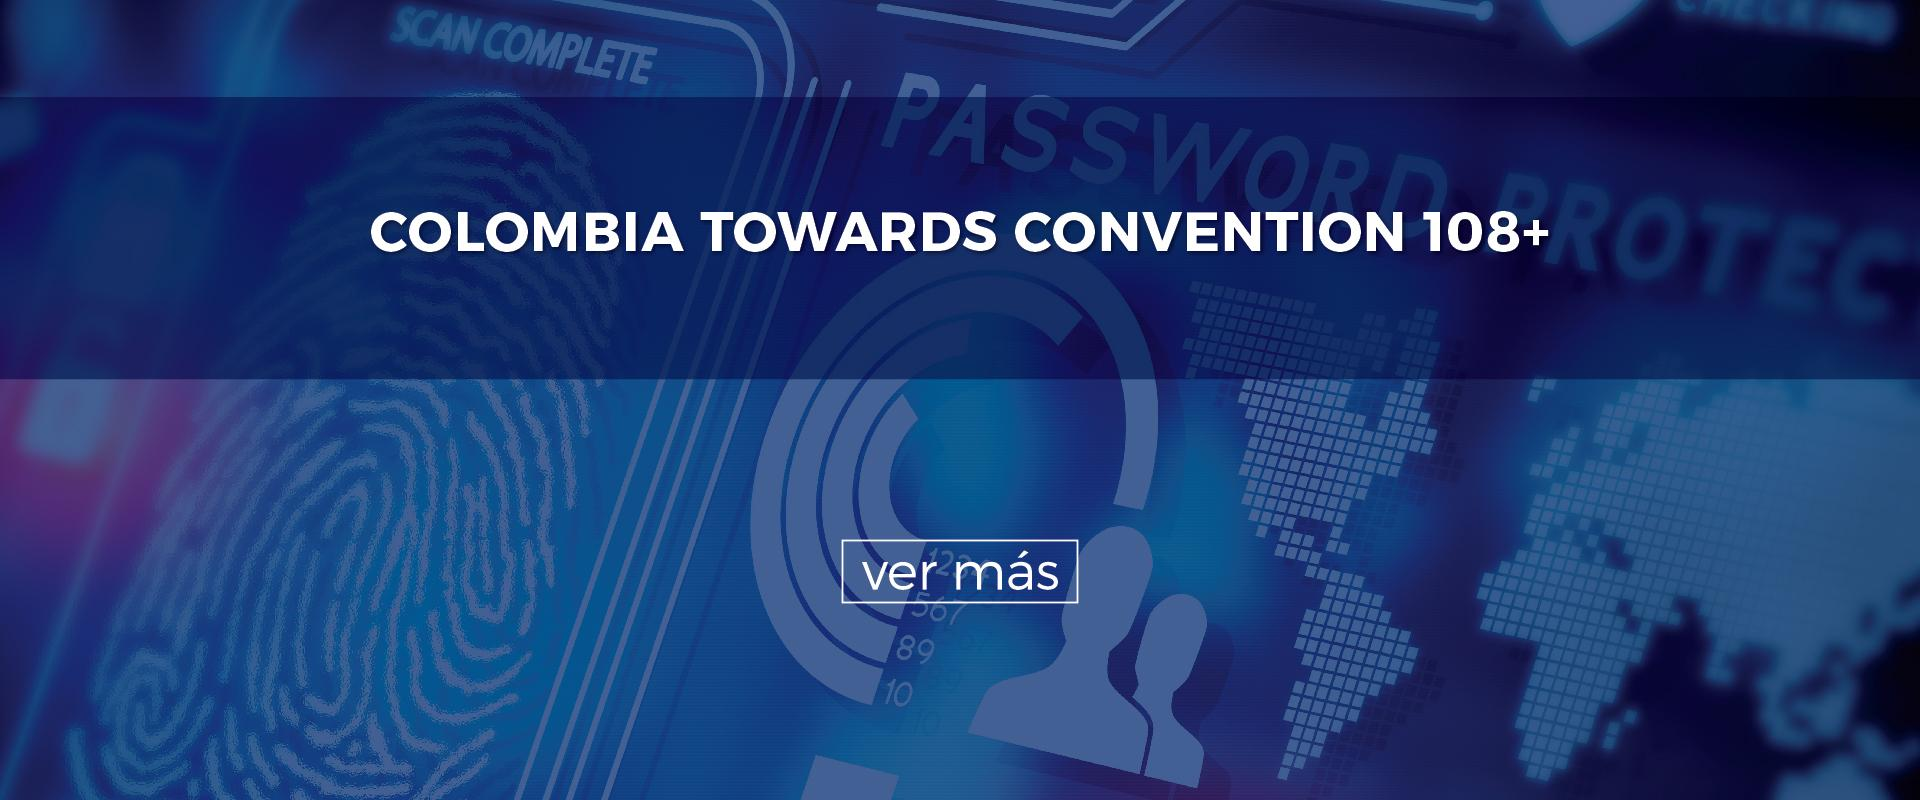 Colombia Towards Convention 108+